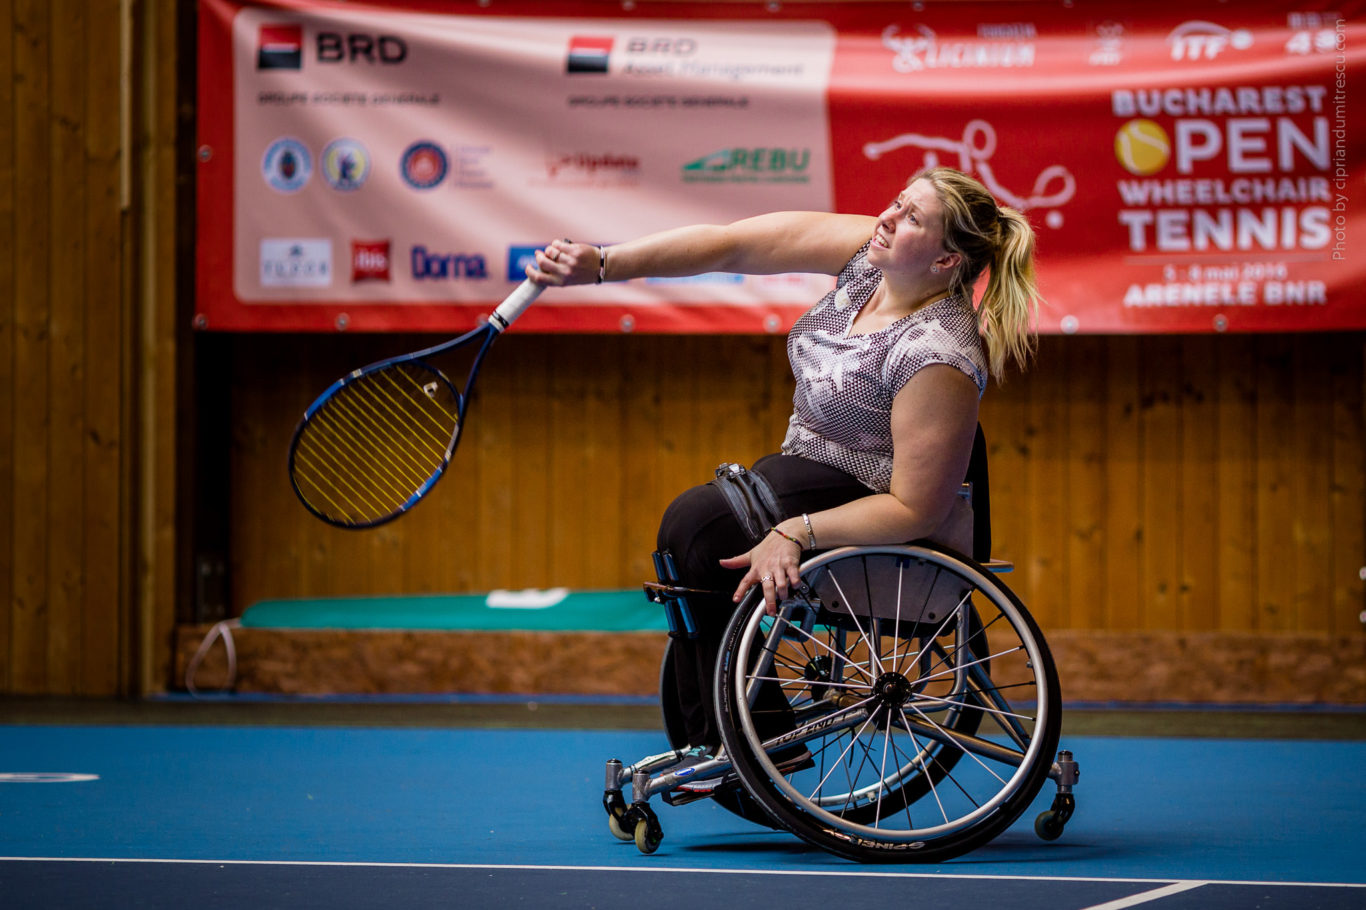 018-Bucharest-Open-Wheelchair-2016-Day-One-Photographer-Ciprian-Dumitrescu